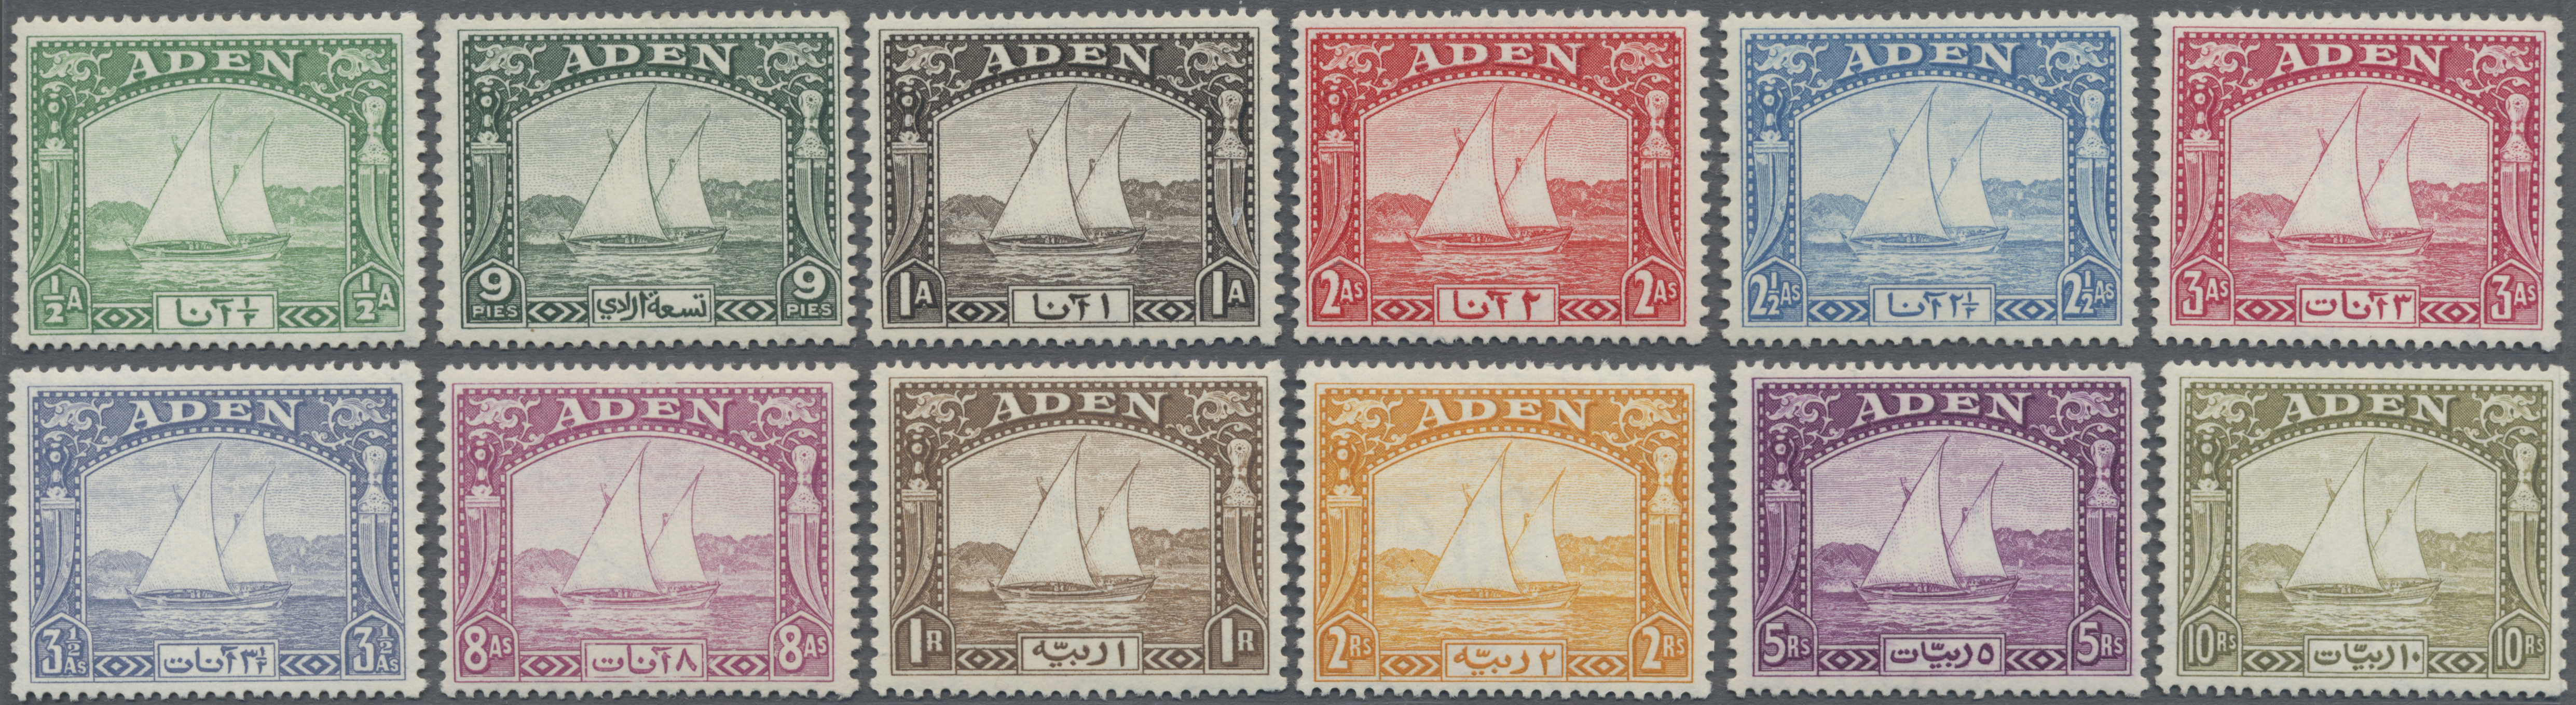 Lot 05002 - aden  -  Auktionshaus Christoph Gärtner GmbH & Co. KG Sale #49 Single lots Asia, Thematics, Oversea, Europe, Old German States, Third Reich, German Colonies and the Federal Republic of Germany